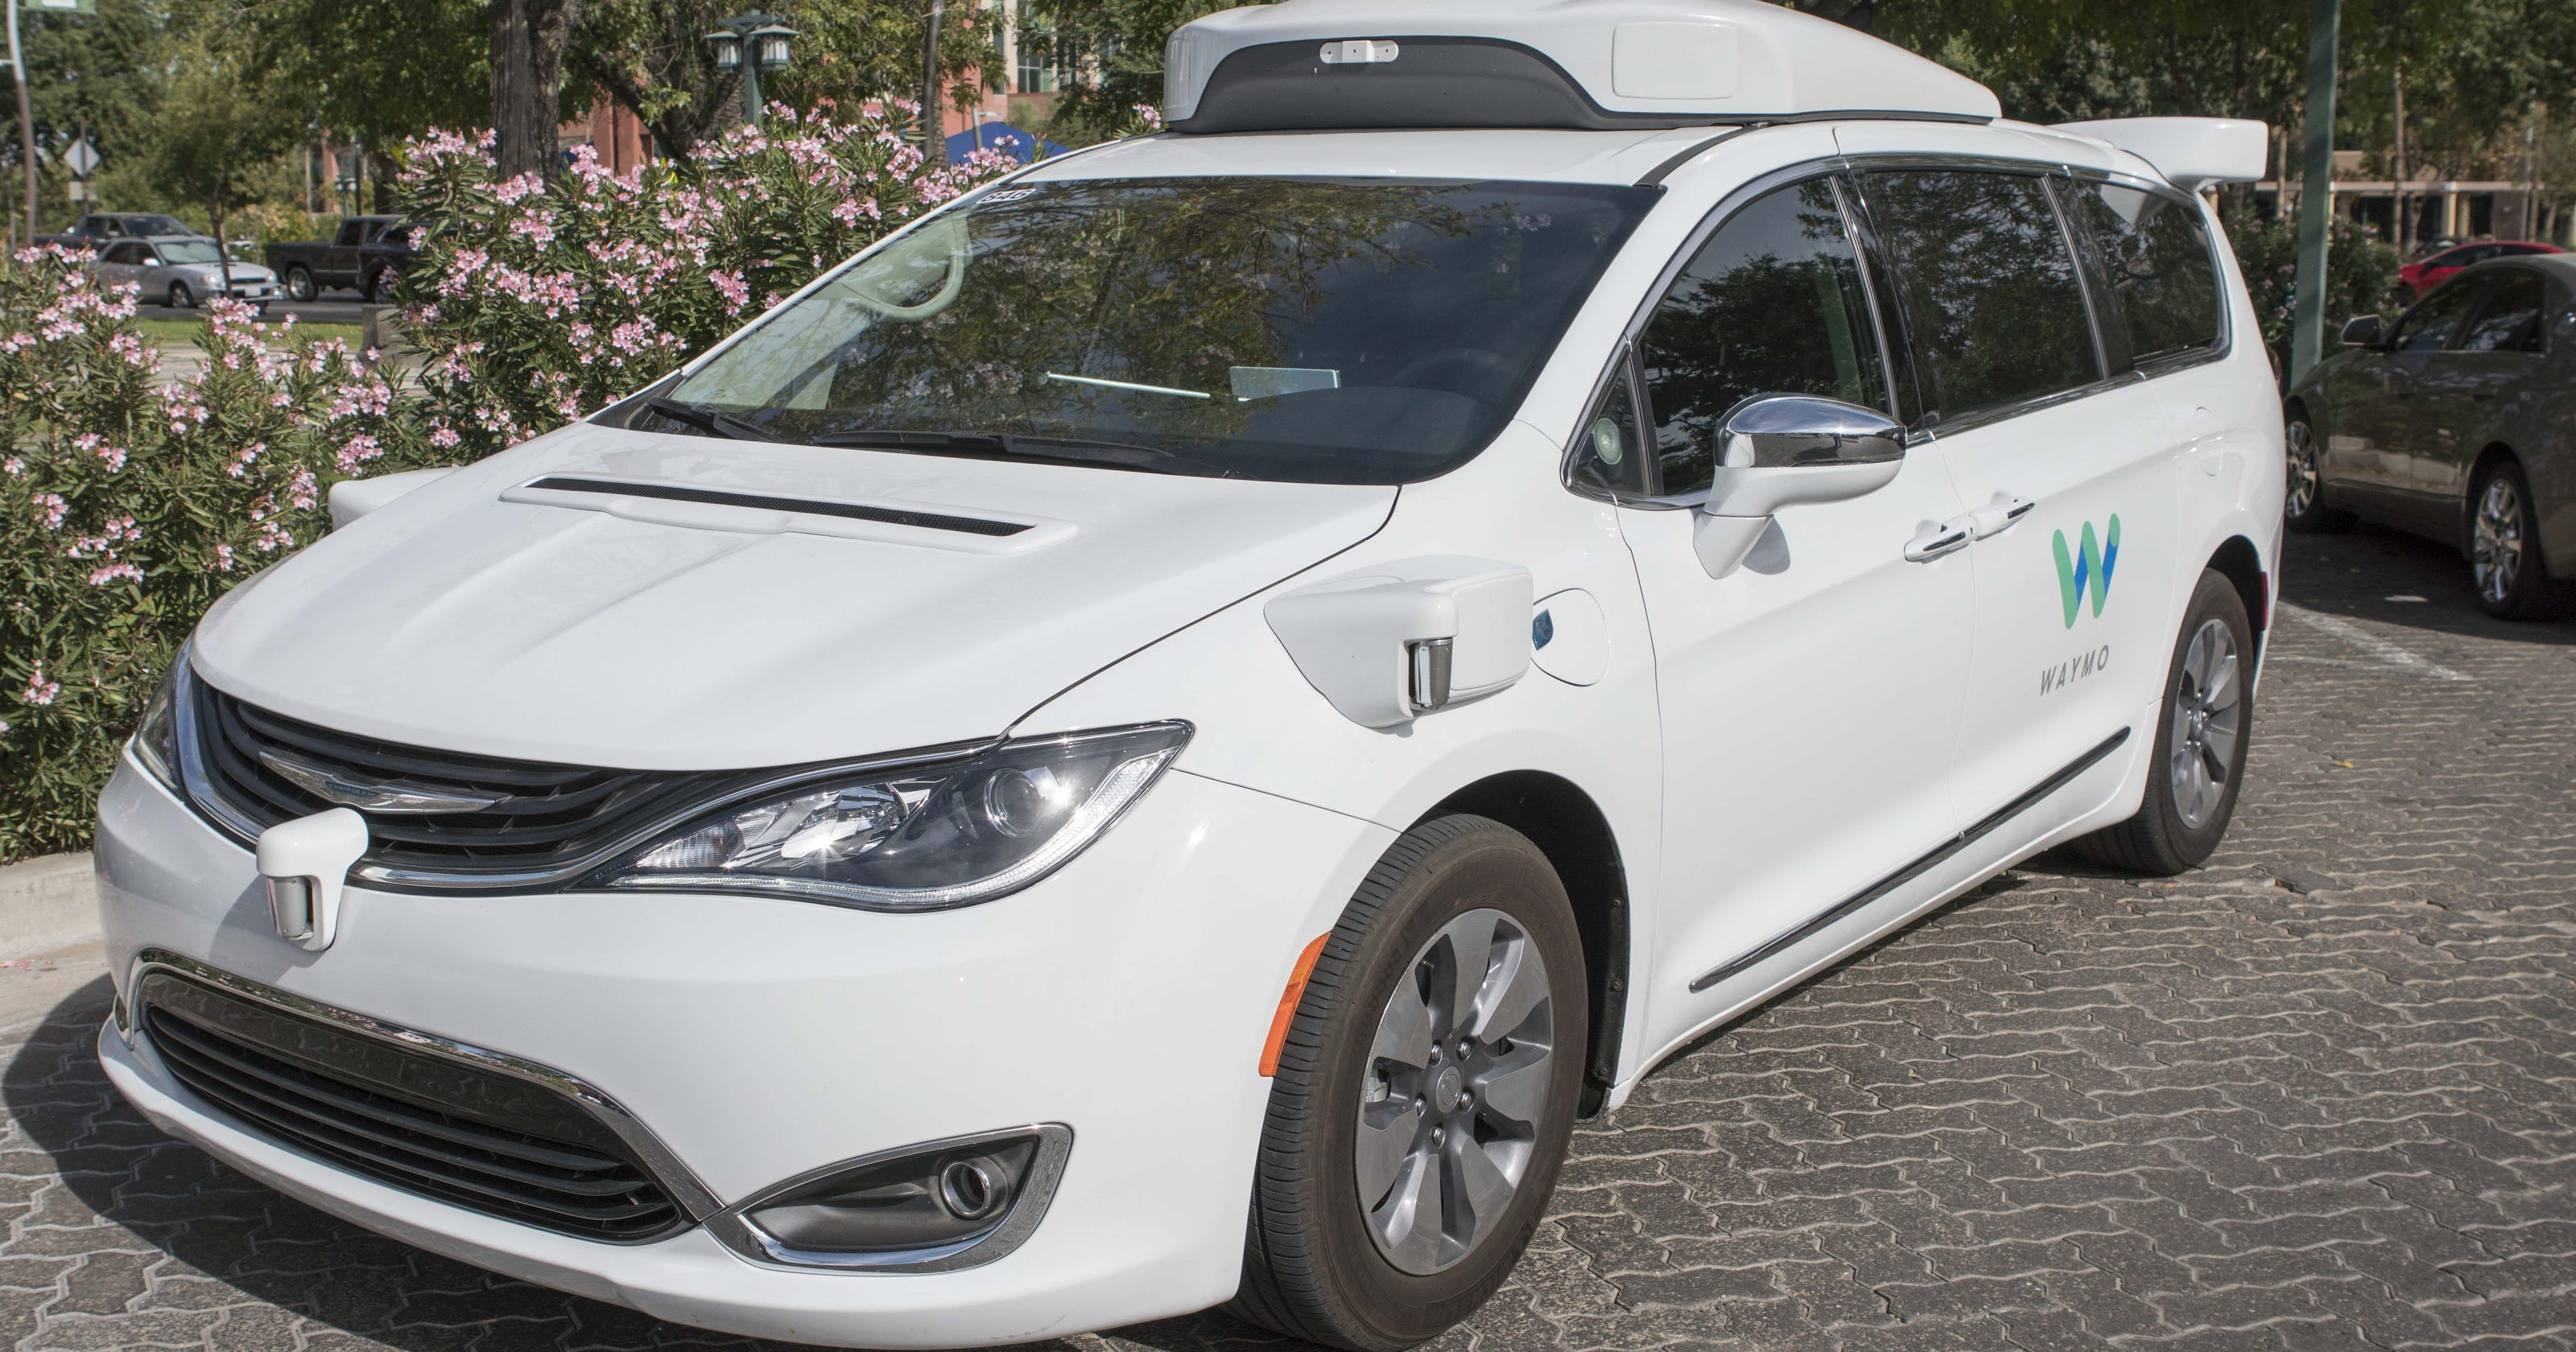 A Q&A guide to the 600 self-driving cars on the road in Arizona